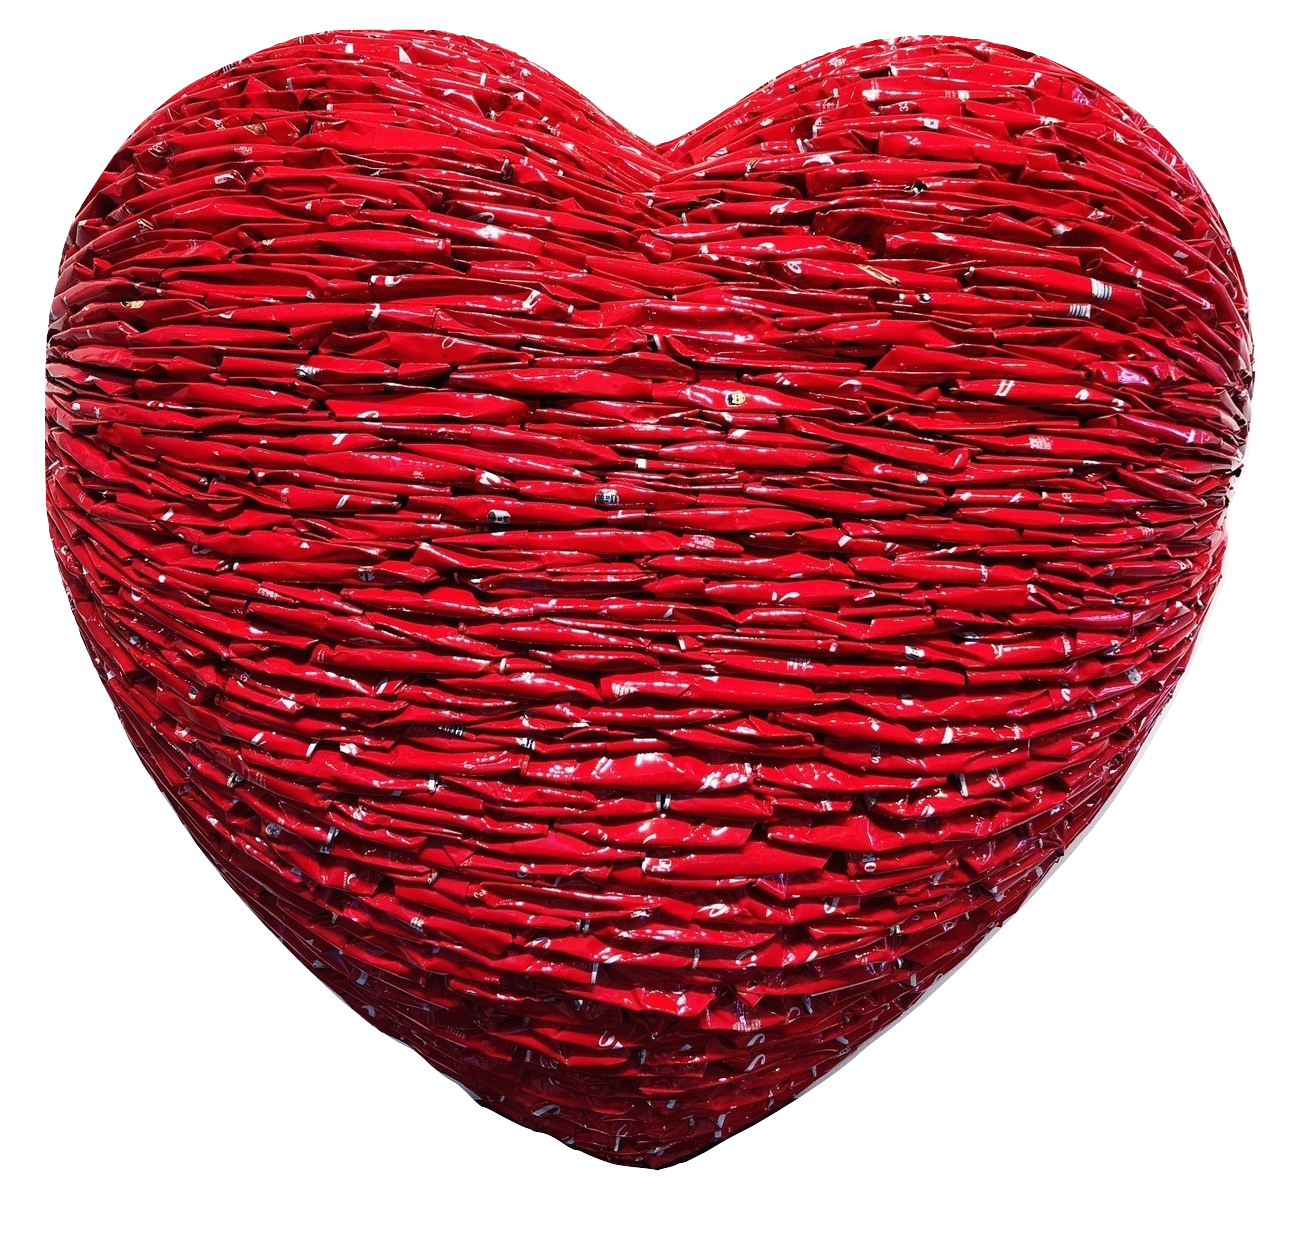 Alfredo Longo - Red Heart (1)_burned-2 2